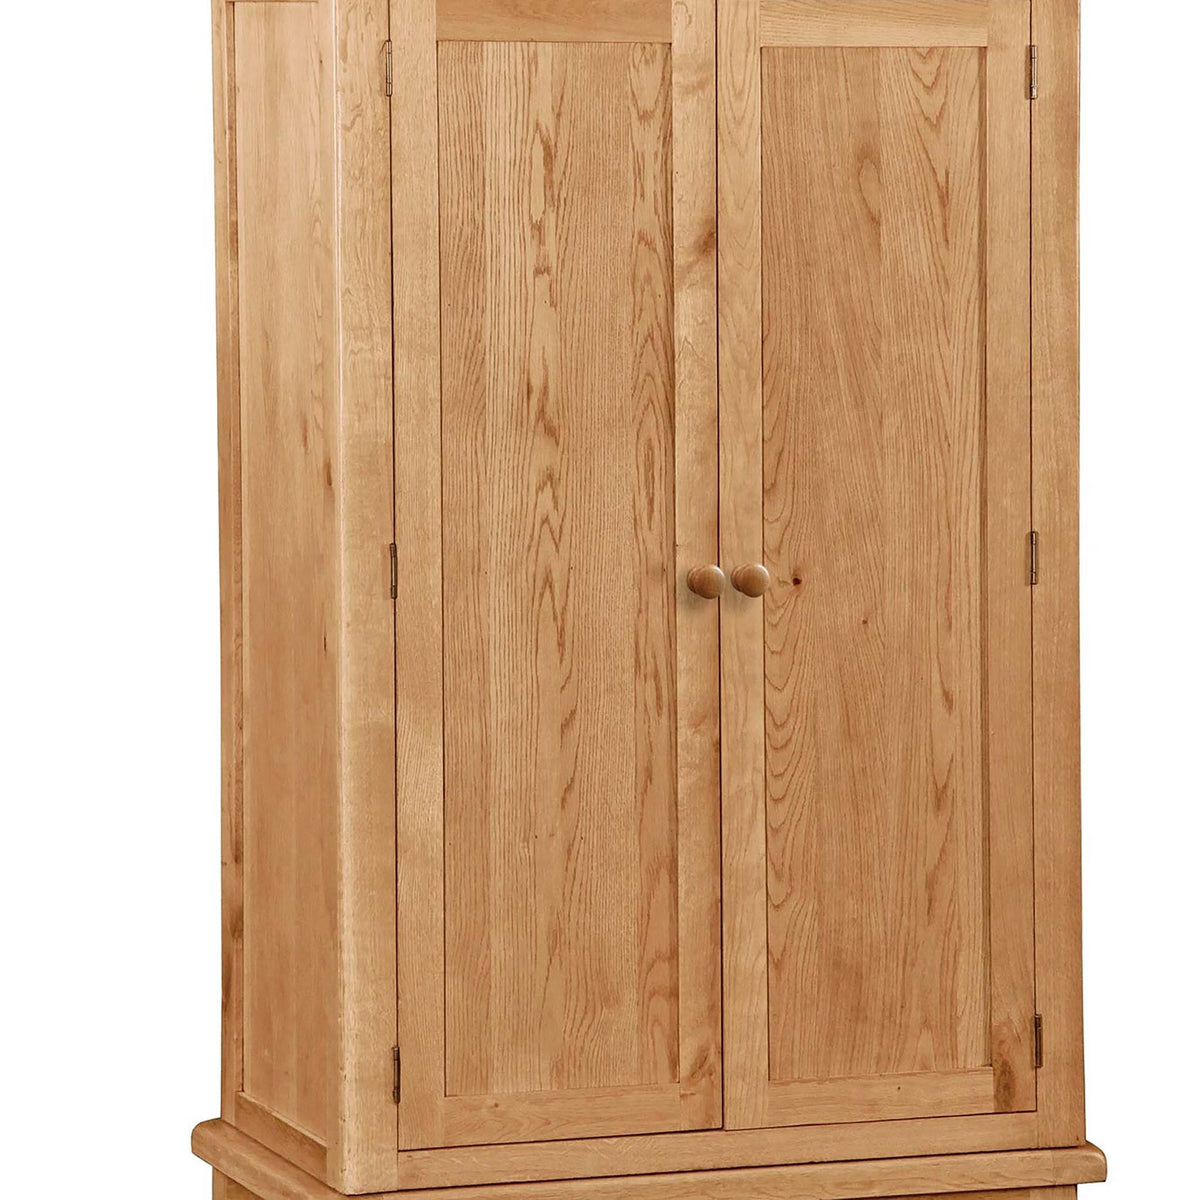 Sidmouth Oak Double Wardrobe With Drawer - Close Up of Wardrobe Doors